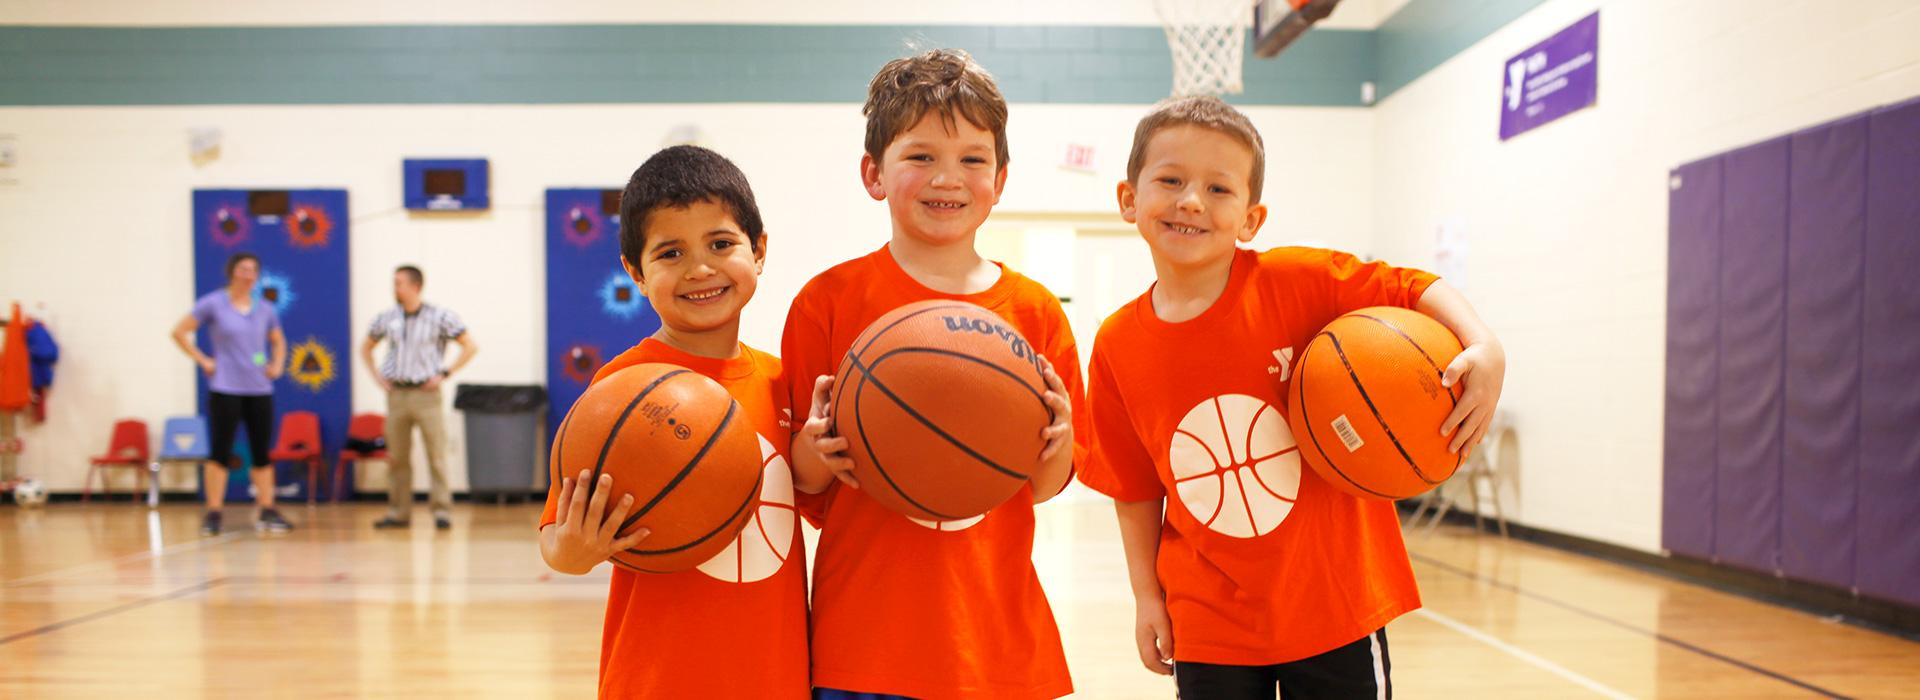 Three young YMCA basketball players holding basketballs in the indoor gymnasium at the Hilltop Family YMCA